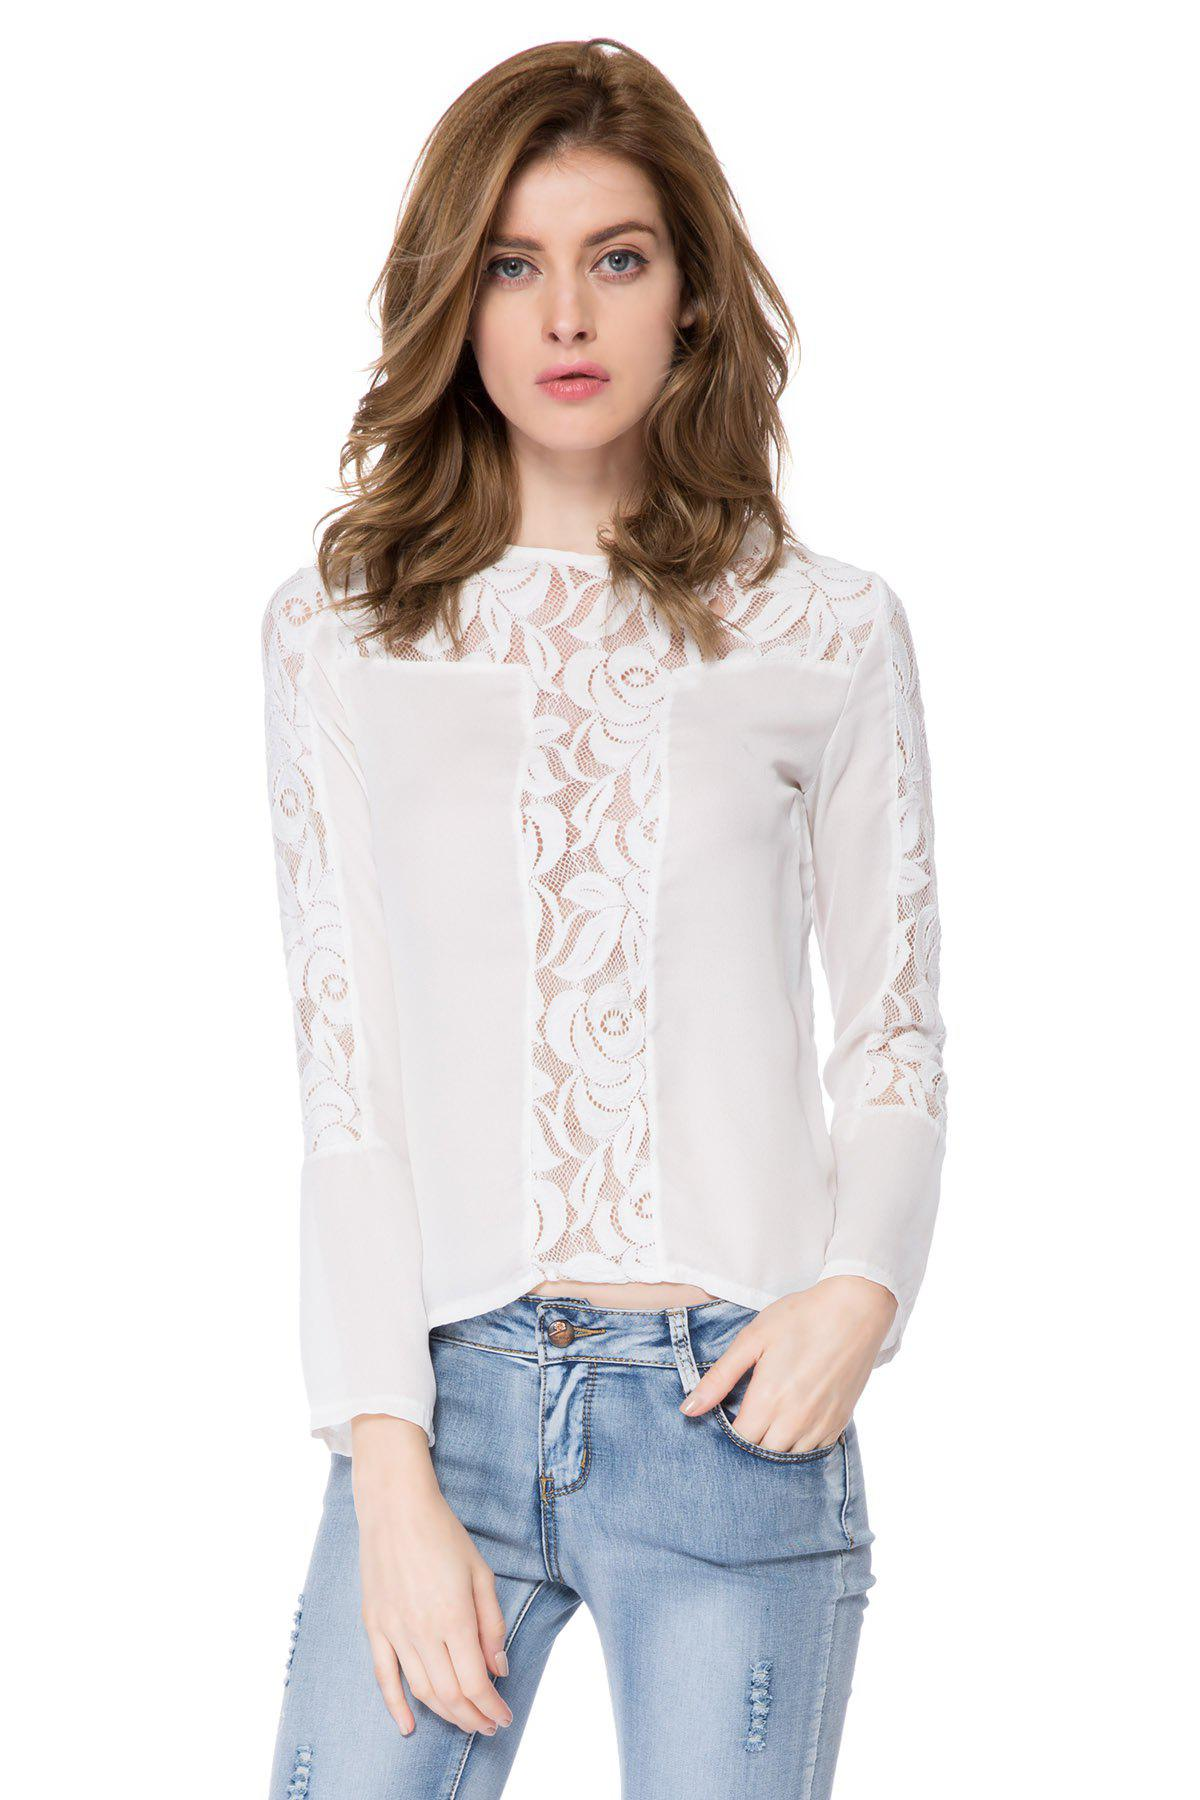 Fashionable Round Neck Long Sleeve Solid Color Spliced Women's Blouse